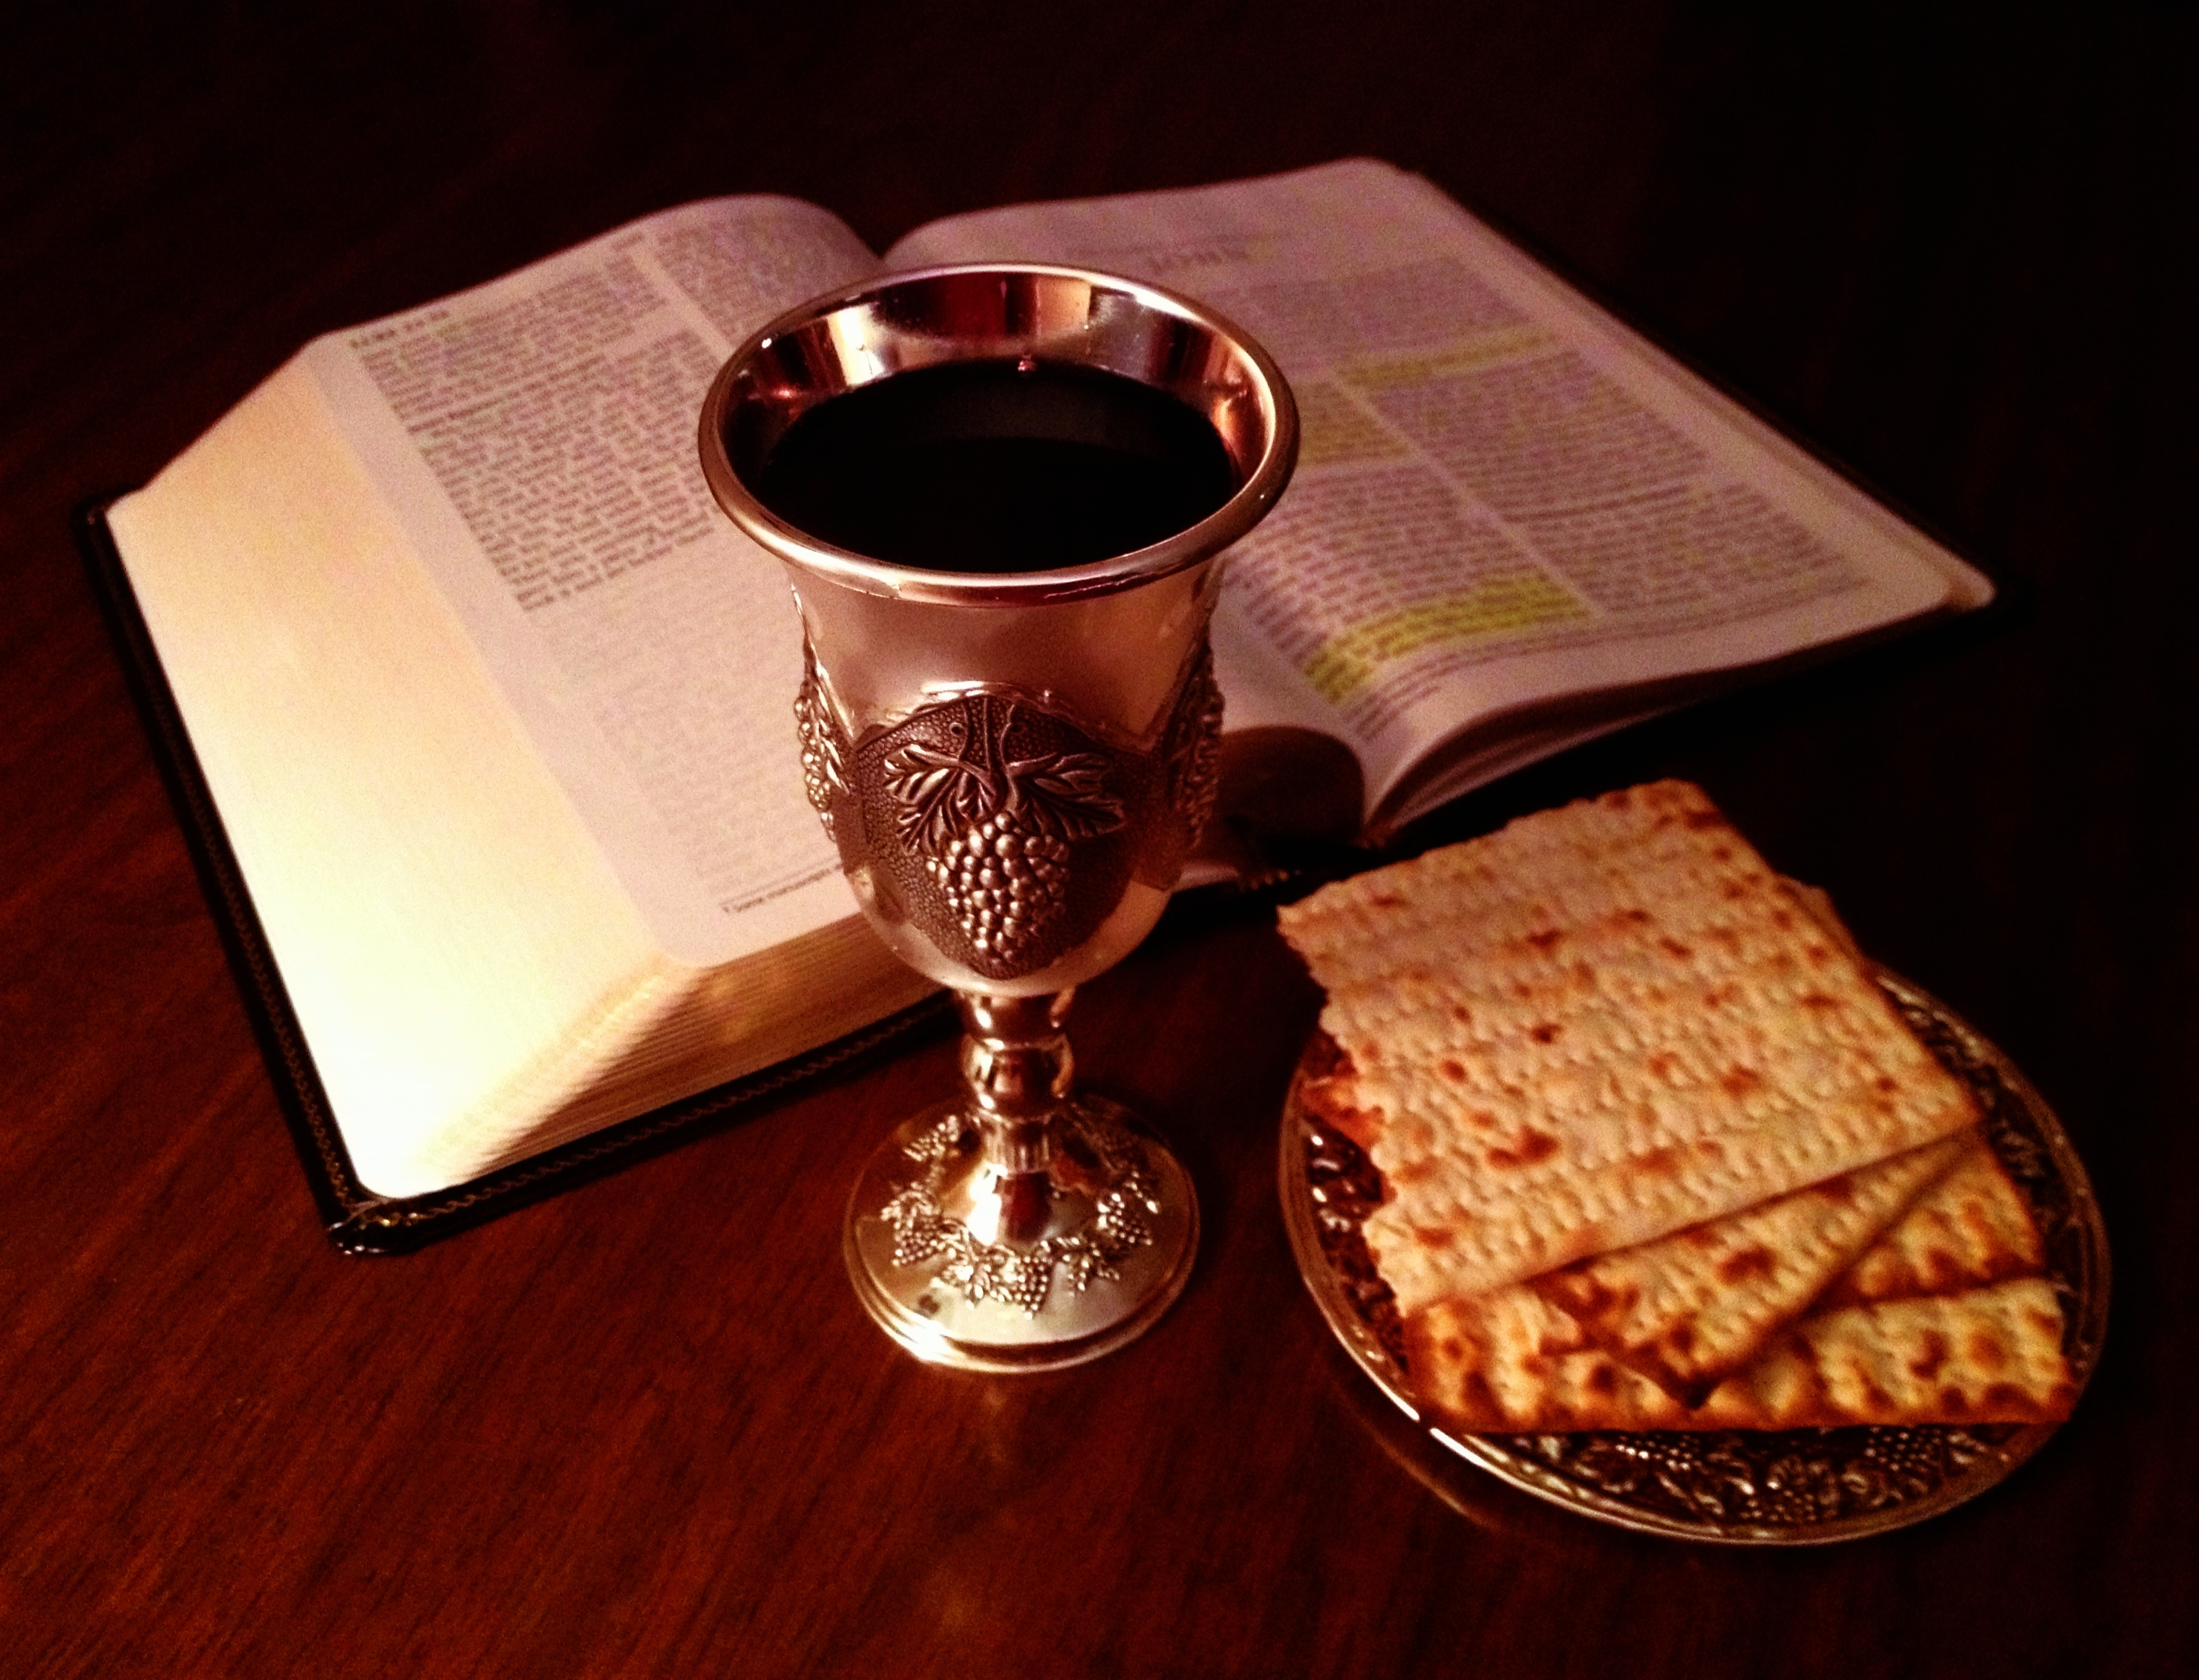 The Bible and the Lord's Cup and the bread.